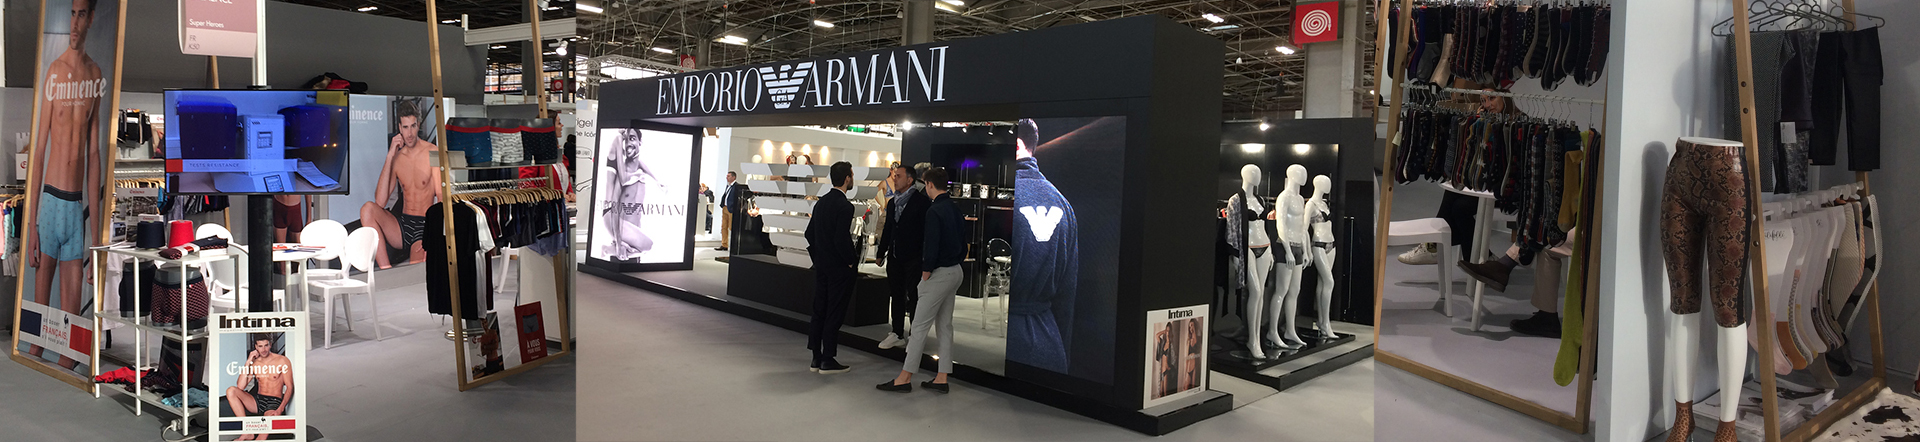 Salon International de la Lingerie - Paris 2019 Emporio Armani, Eminence